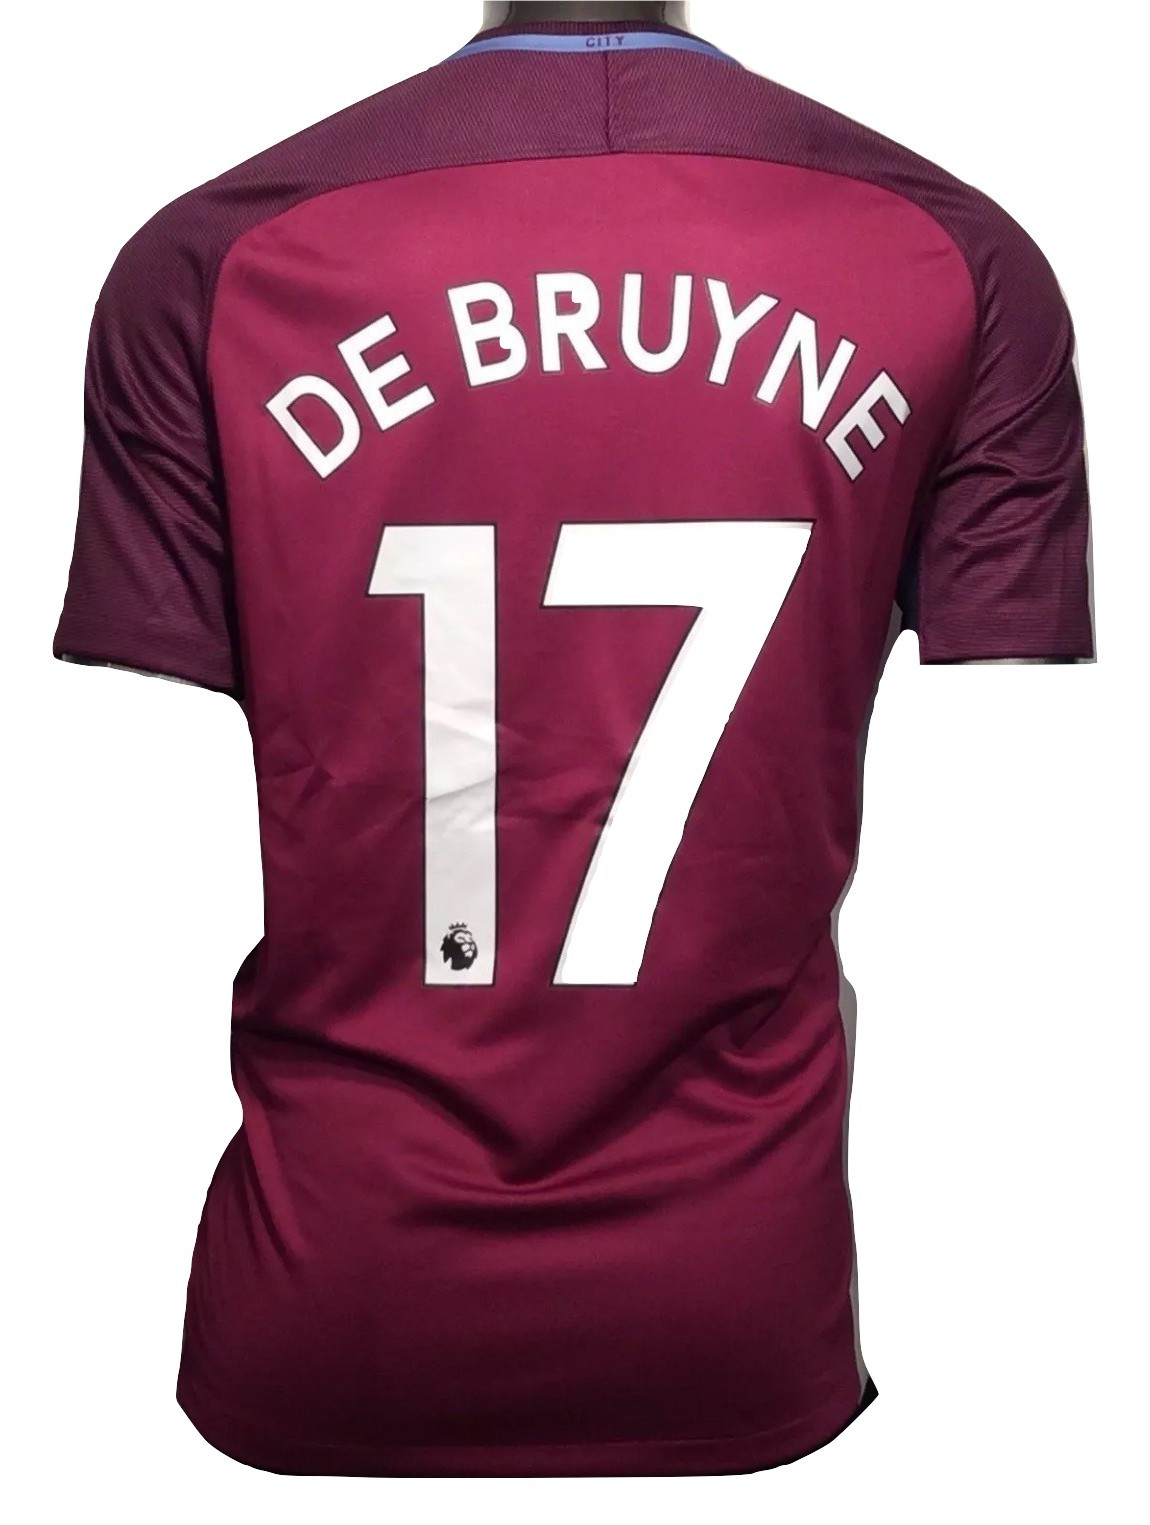 2017-18 Manchester City Nike Kevin De Bruyne and 50 similar items 036725534